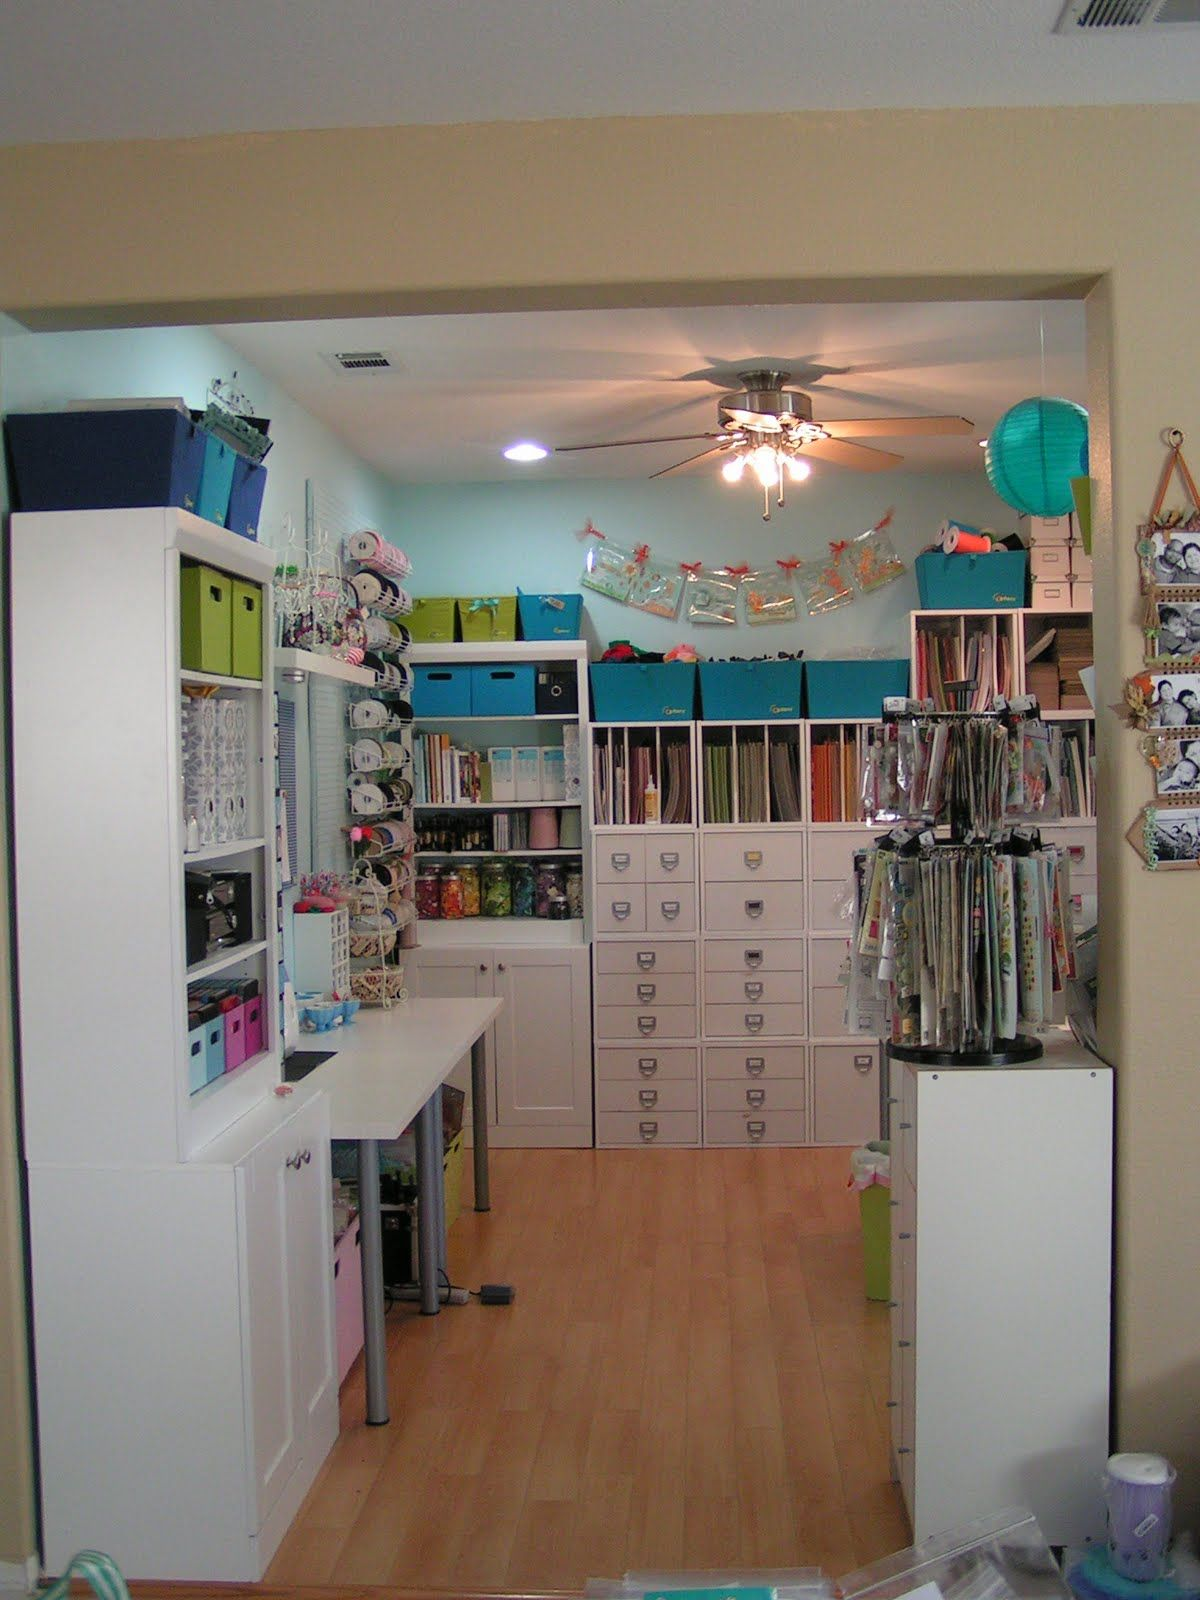 10x10 Room Layout Craft: Wow, Lots Of Stuff. Must Check Home Depot For Bookcases